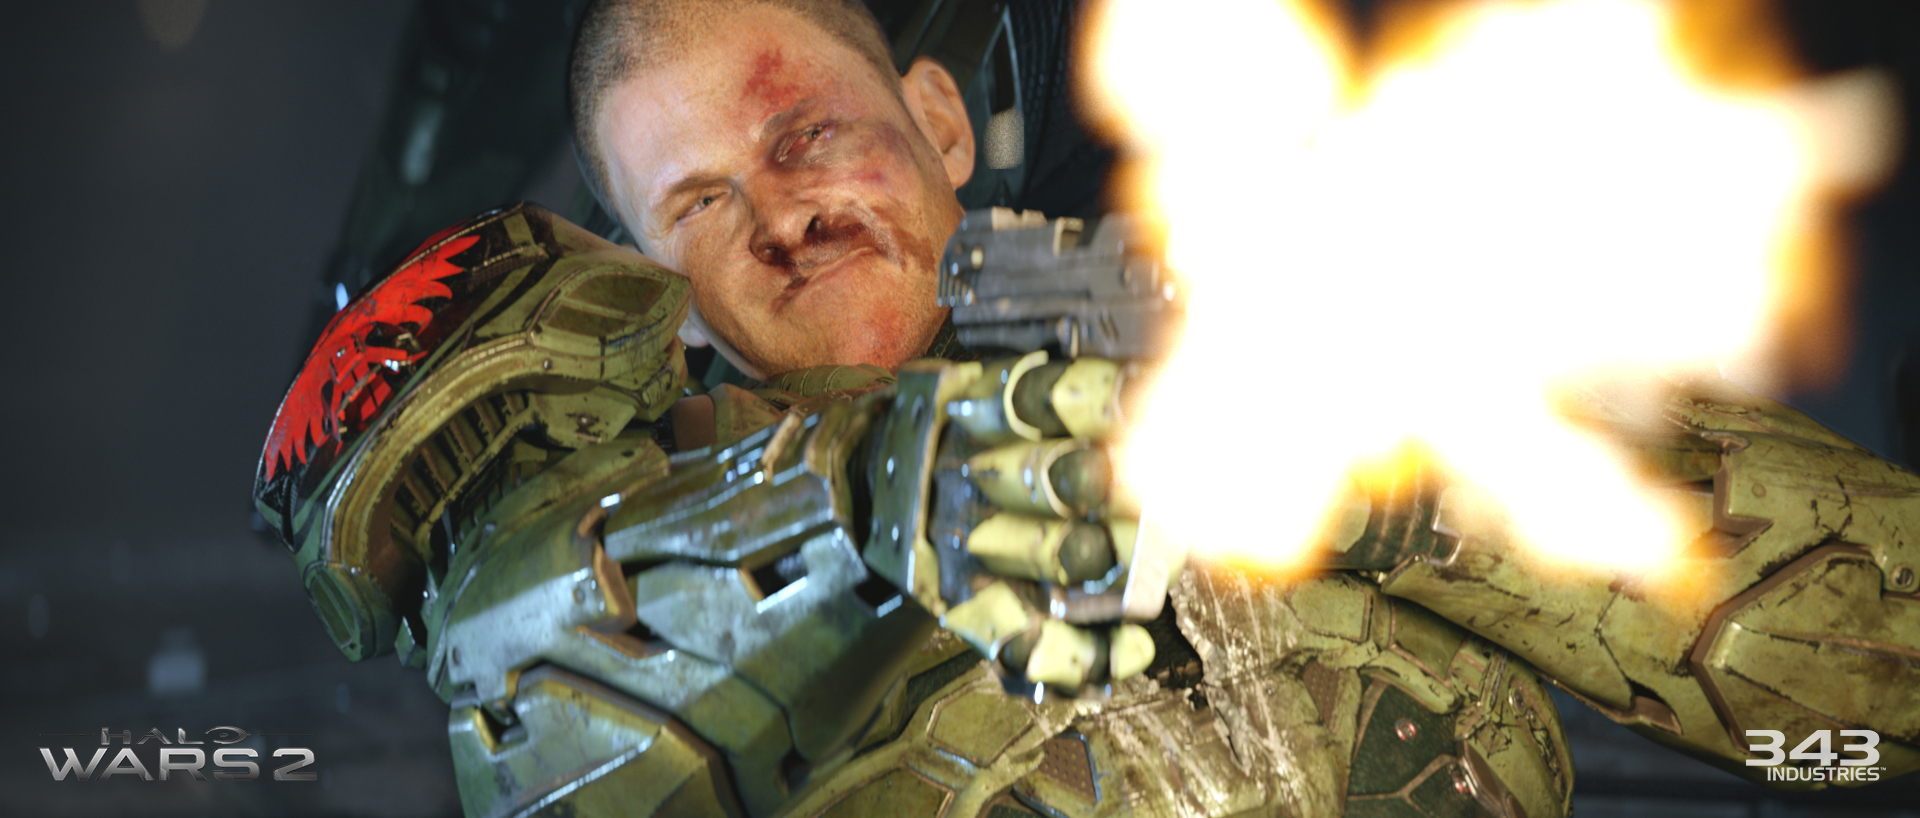 Gamescom 2015: Halo Wars 2 announced for Xbox One and